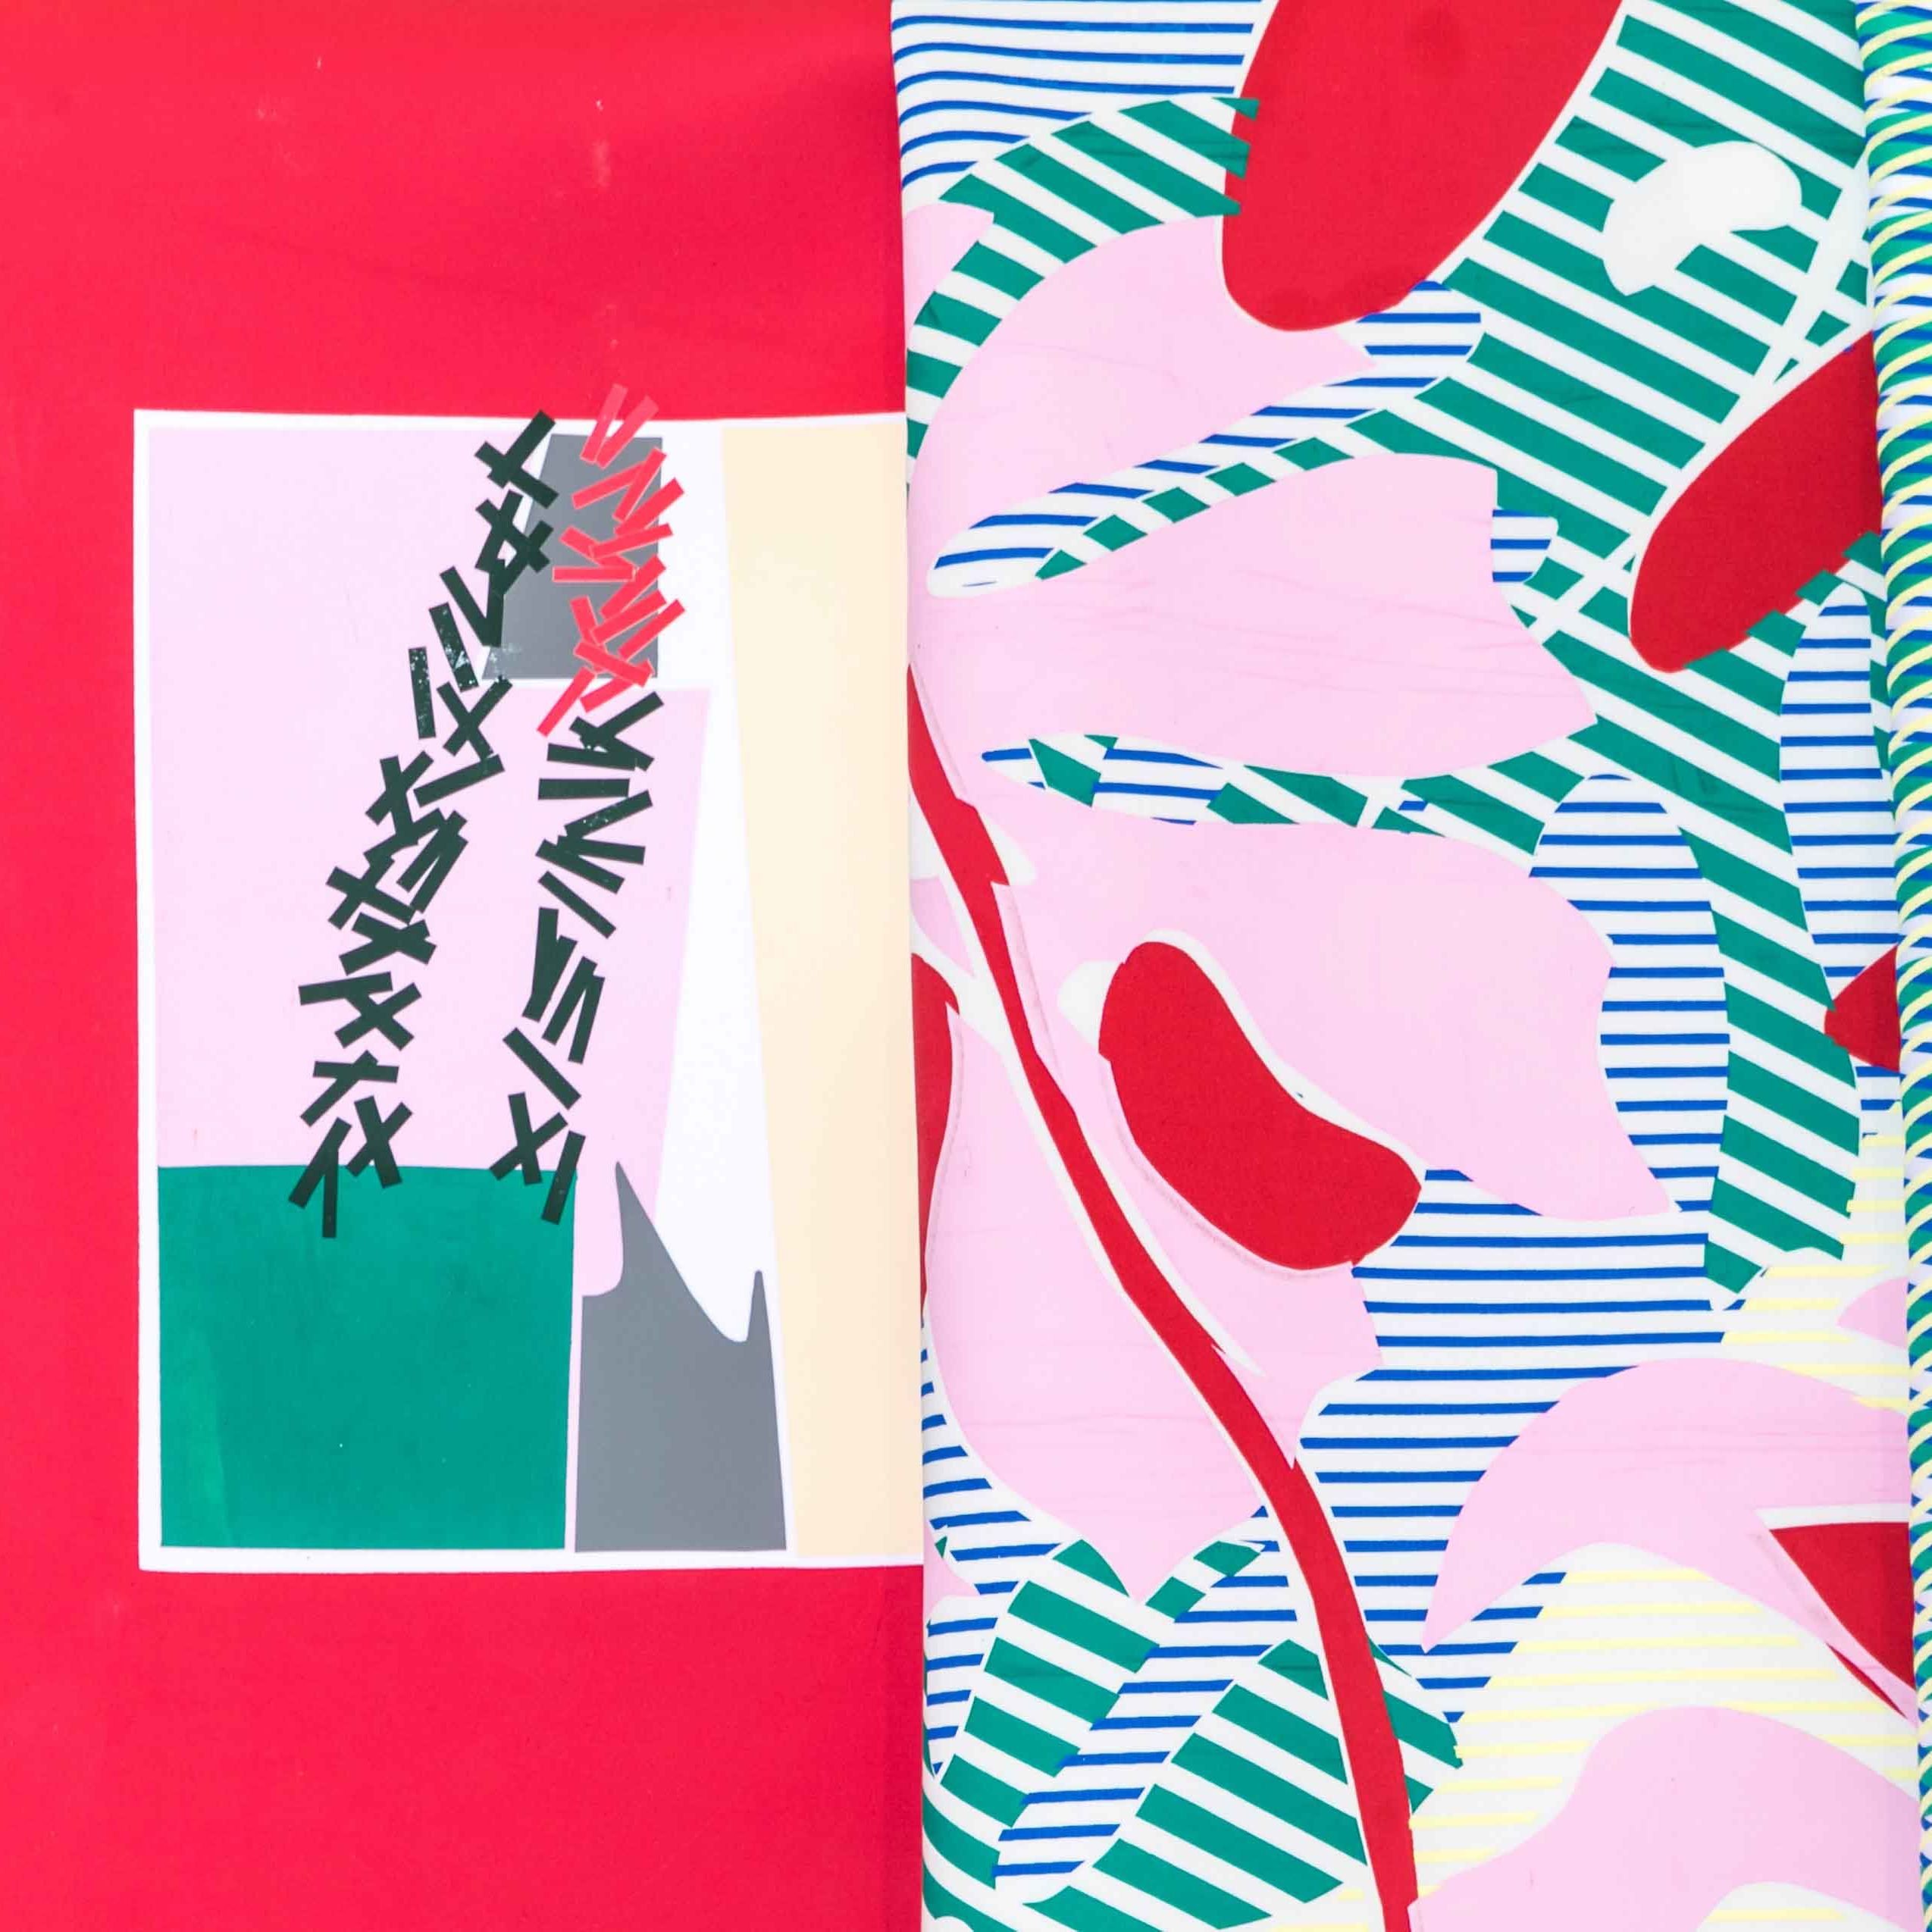 Four pieces of cloth each with a different printed design from BA Textile Design at Central Saint Martins